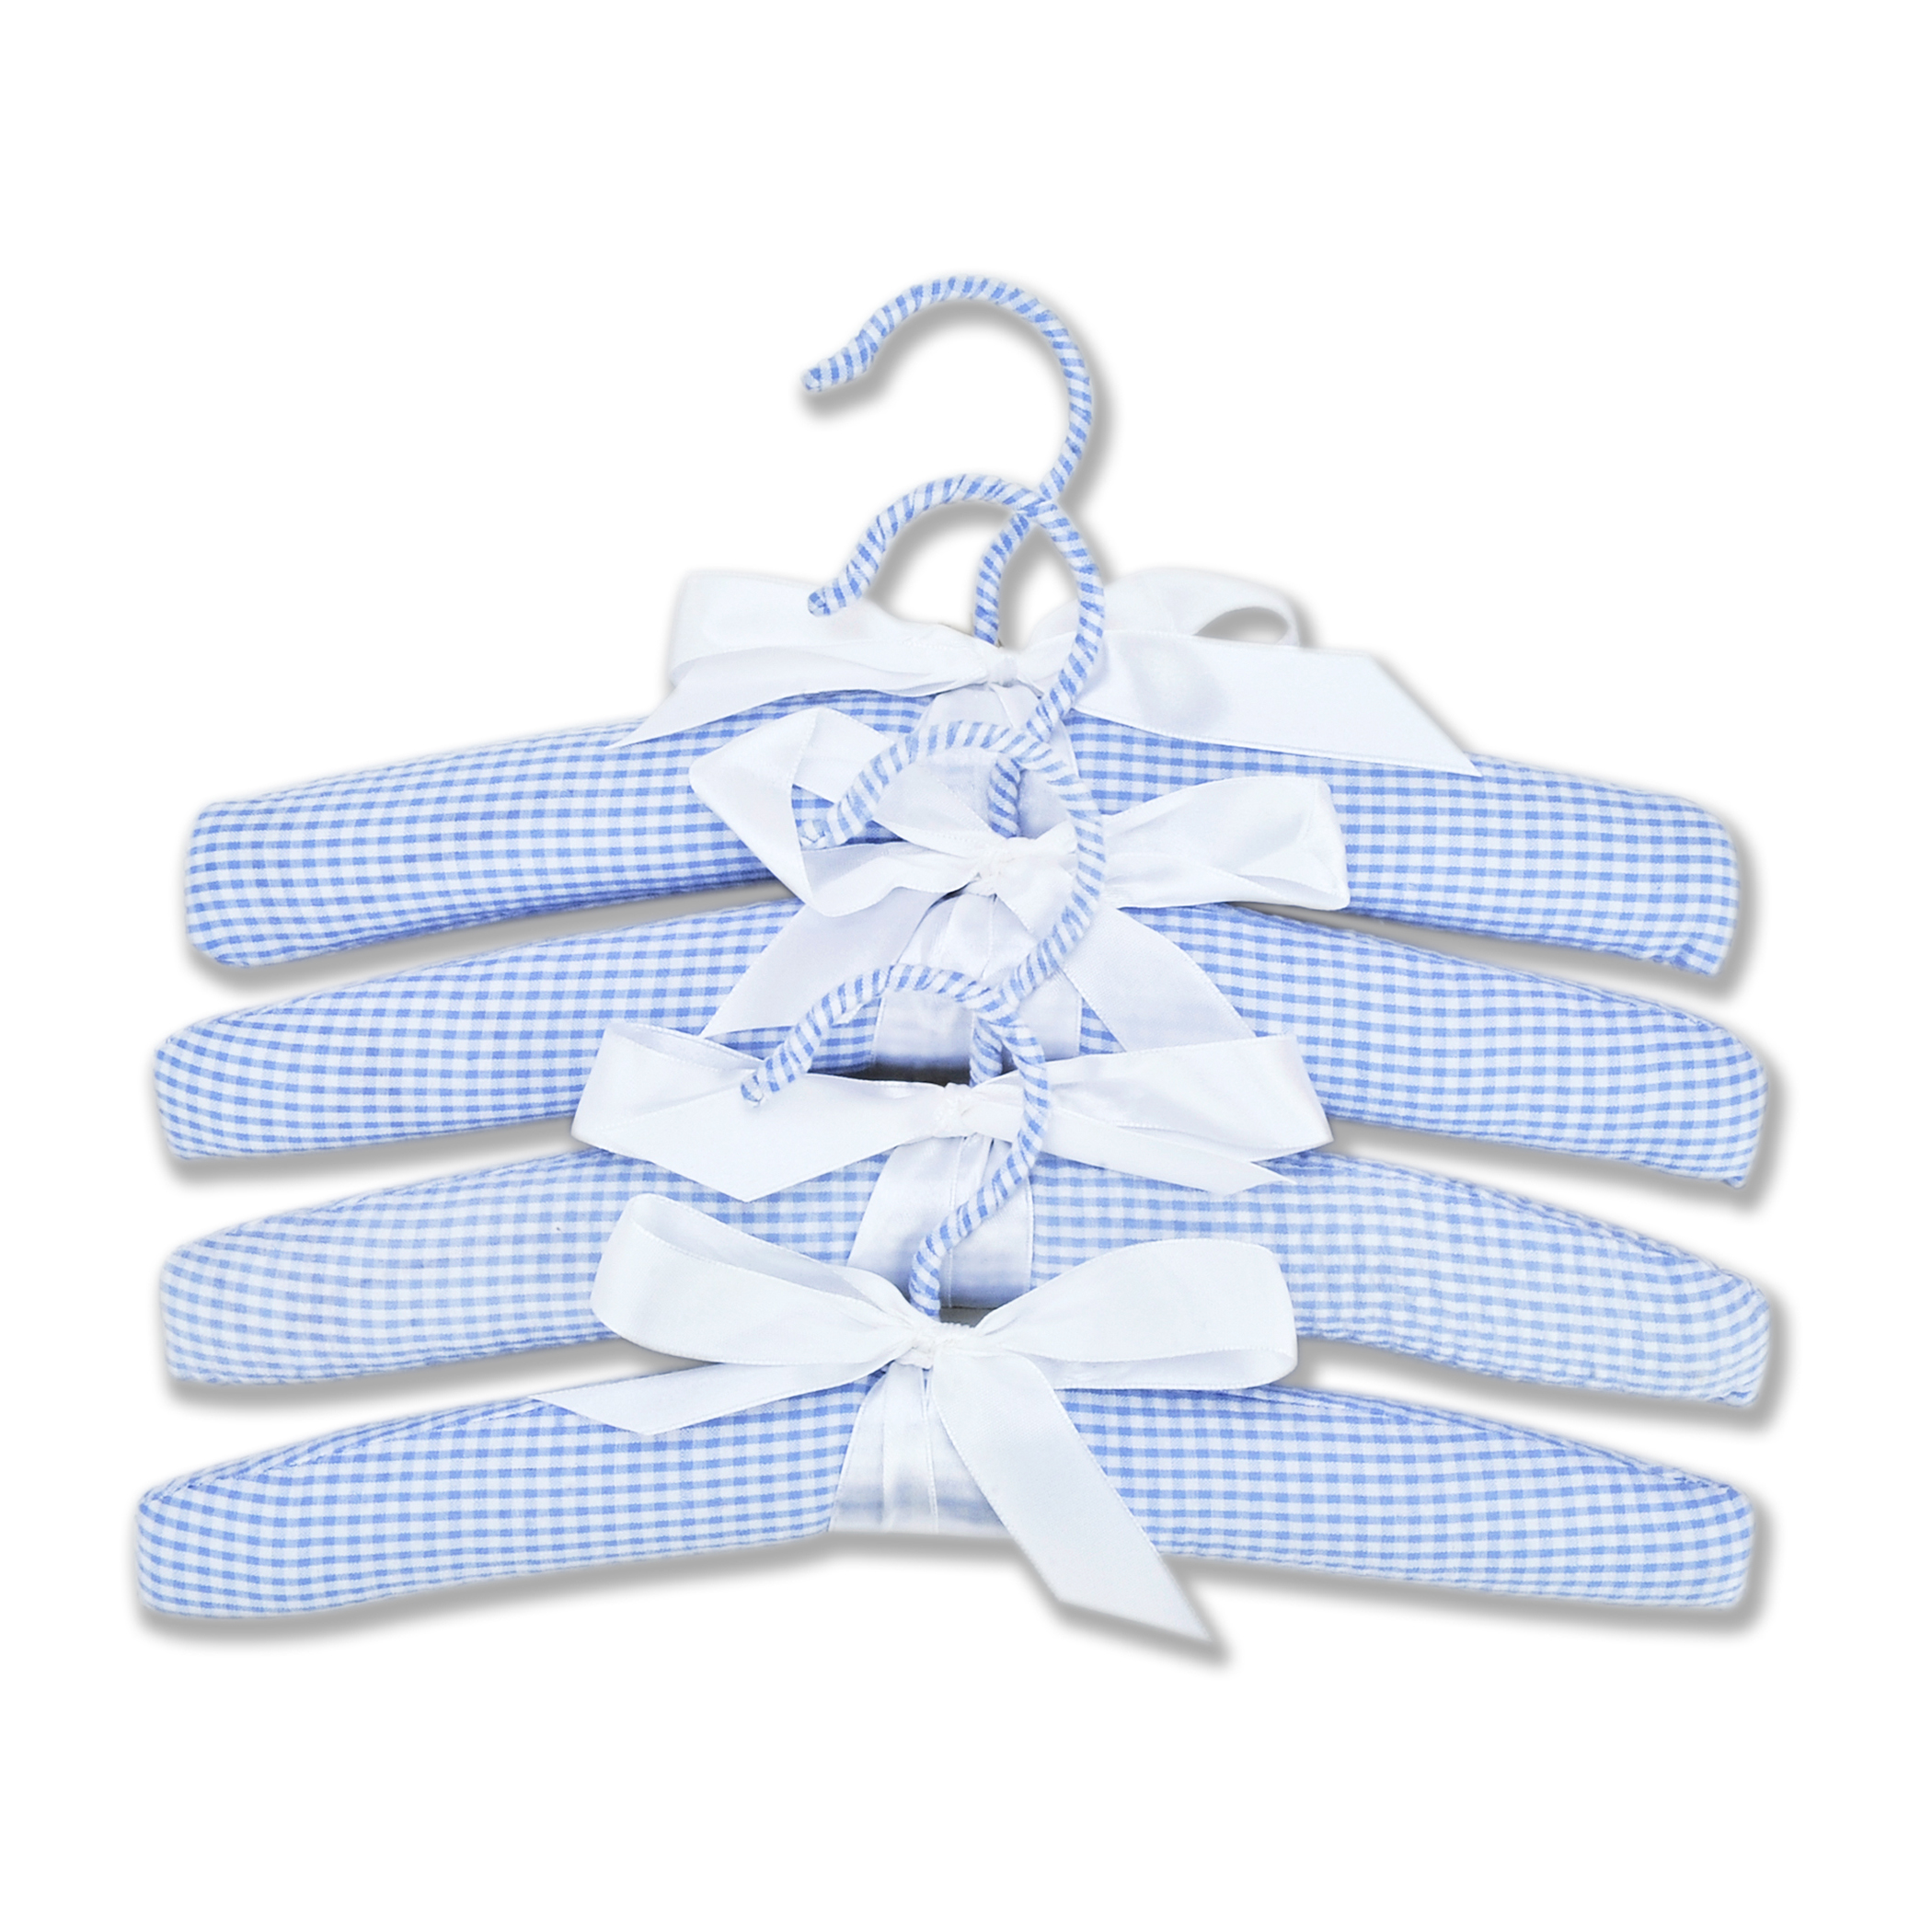 Hangers - 4 Pack Blue Gingham Seersucker